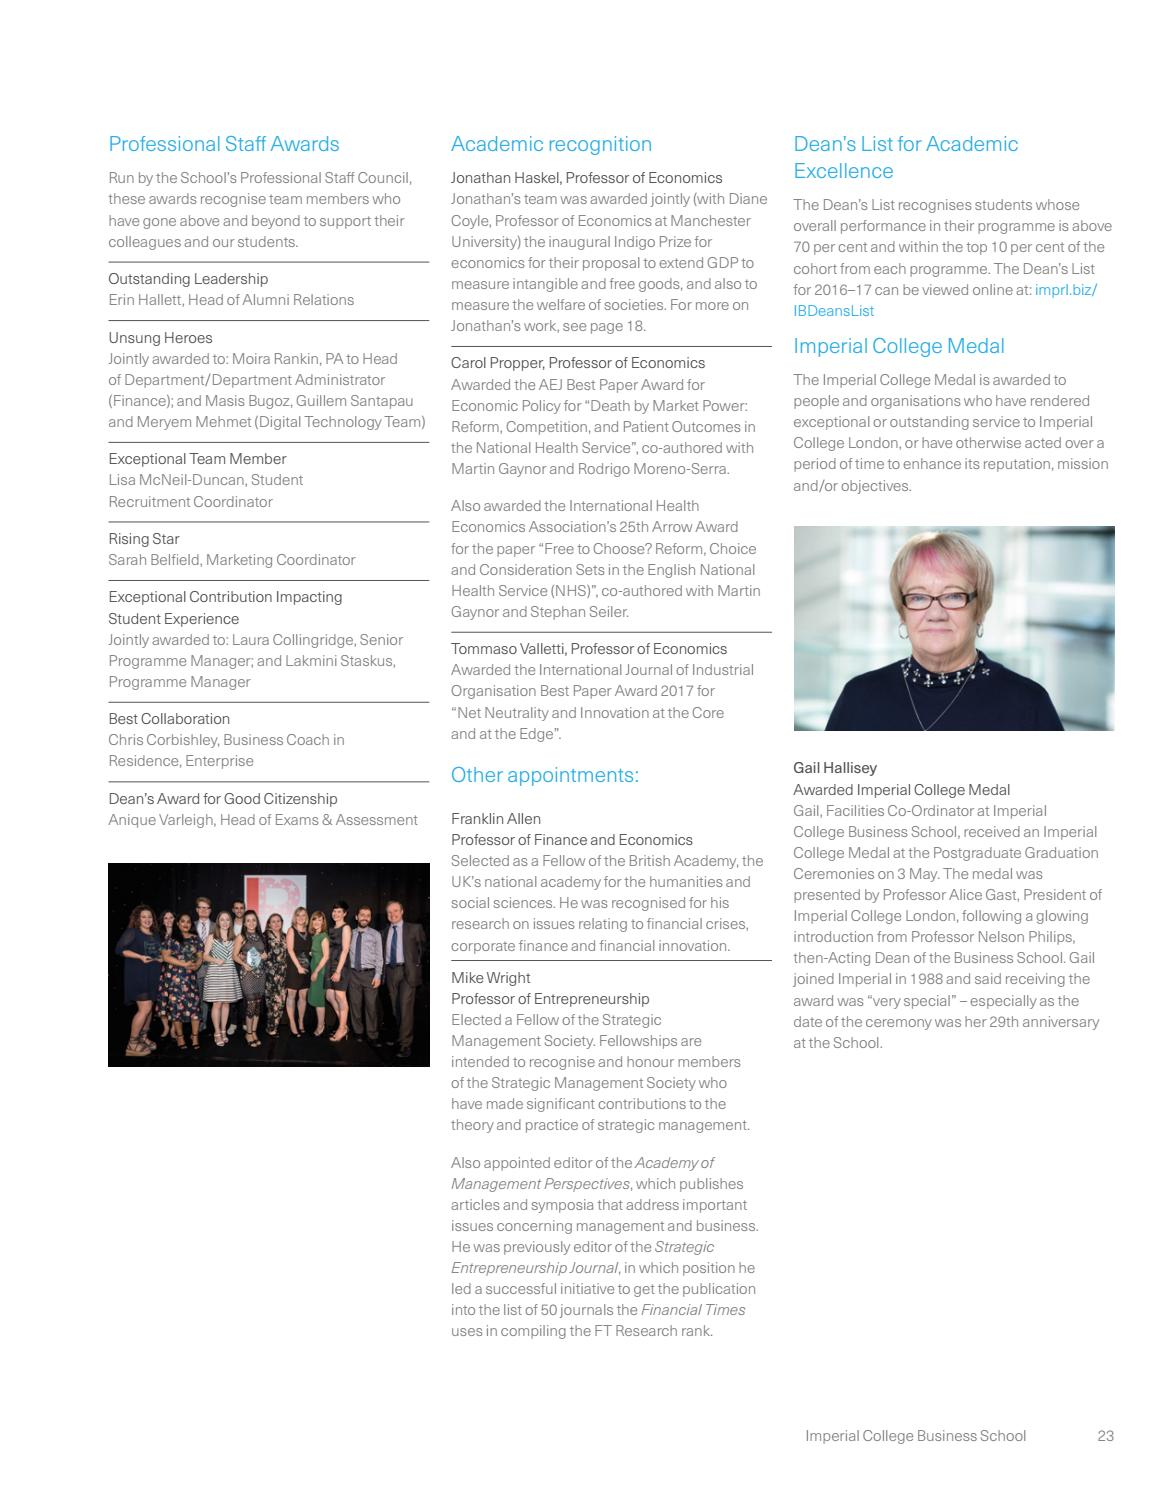 Imperial College Business School Annual Report 2017 by Imperial